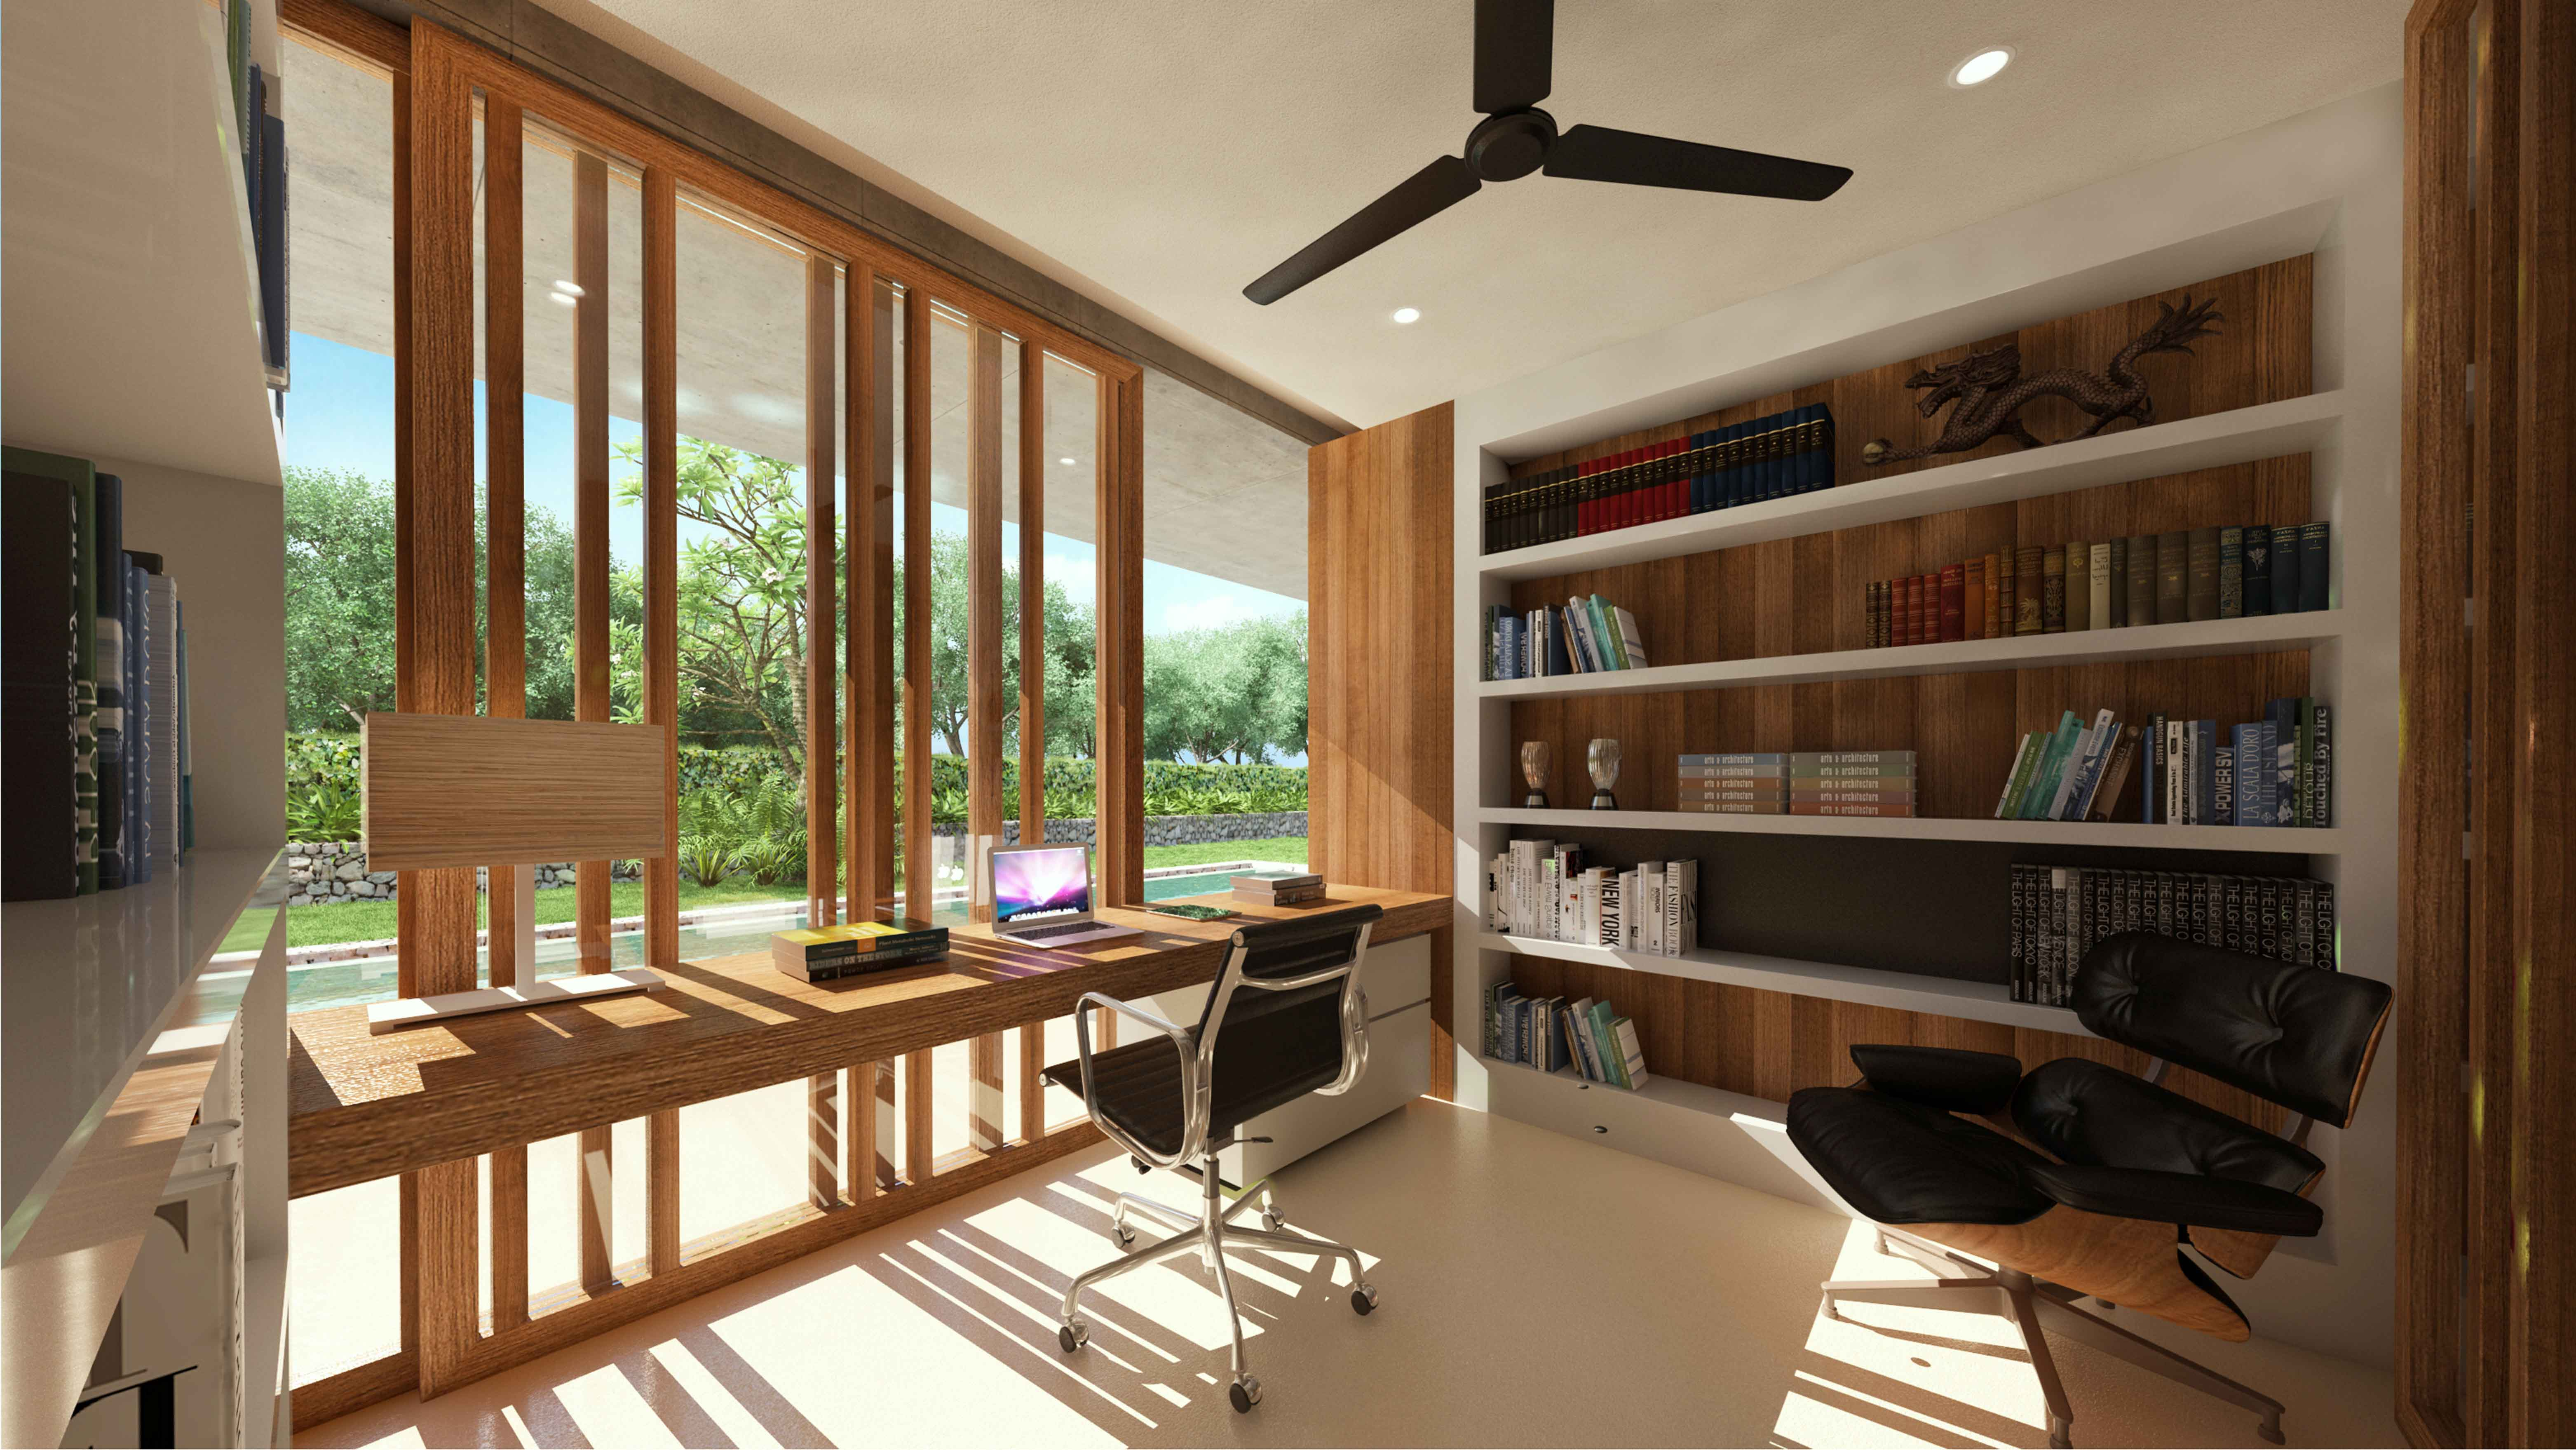 Projects Photo/Sunplay Lifestyle Bangsaray Thailand/sunplay-lifestyle-study-room